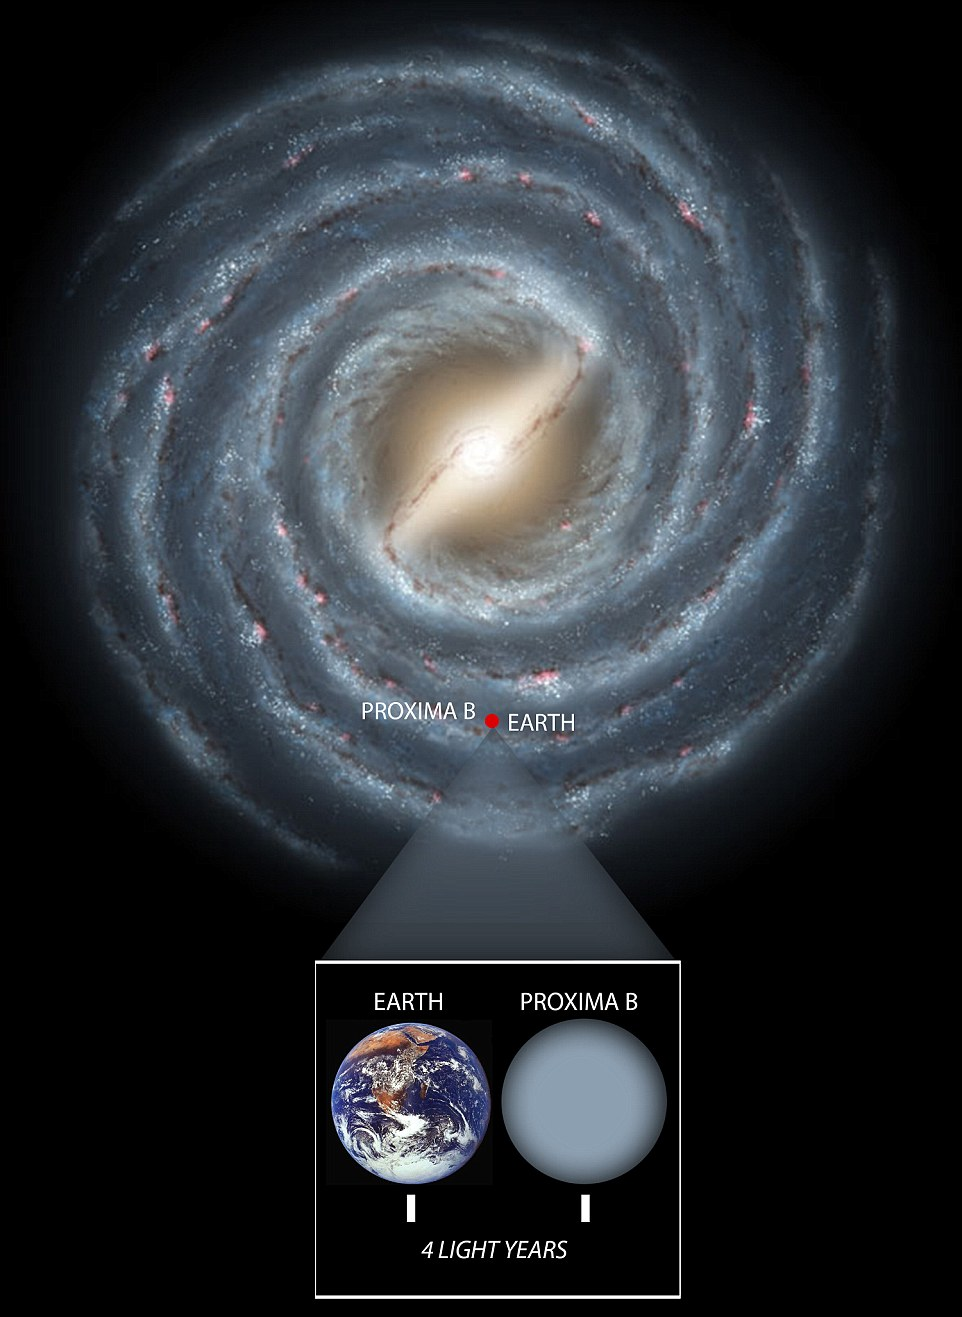 The Milky Way (artist's impression shown top) is around 100,000 light years across. Earth and Proximia B are on 4 light years apart (inset), making them galactic neighbours. Scientists hope we can reach the planet in the next few decades